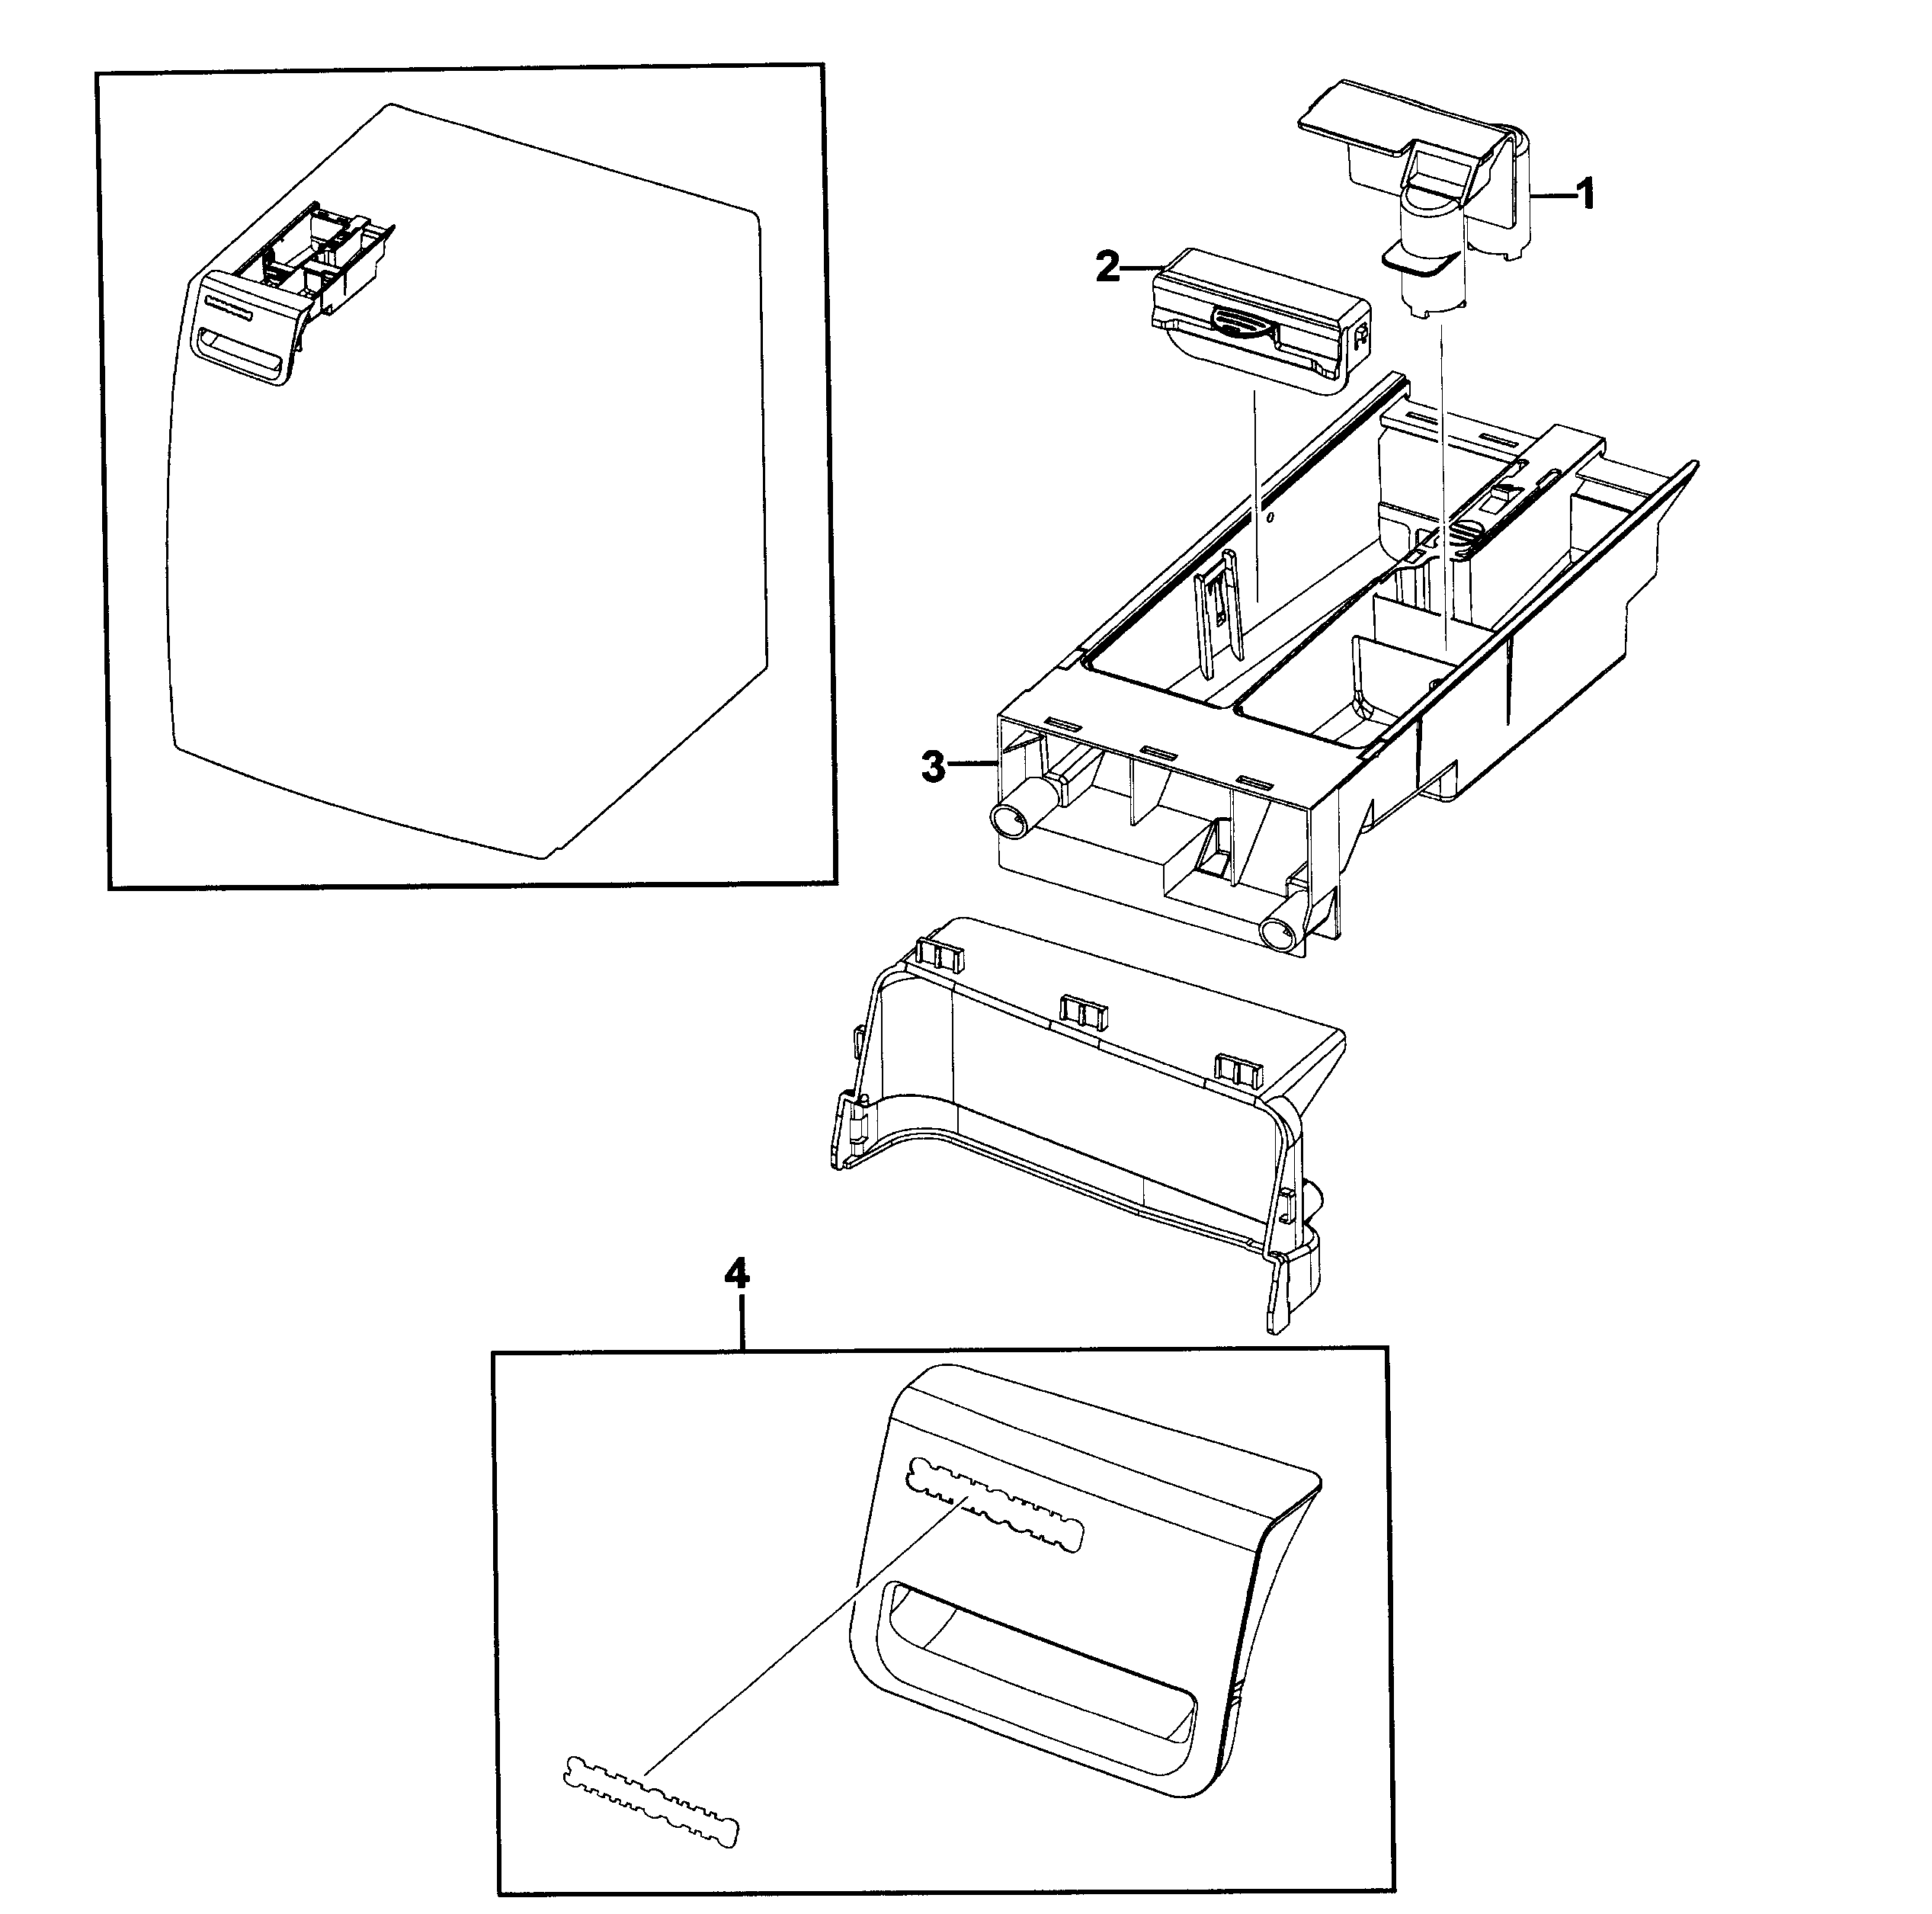 Samsung Front Load Washer Manual Drain